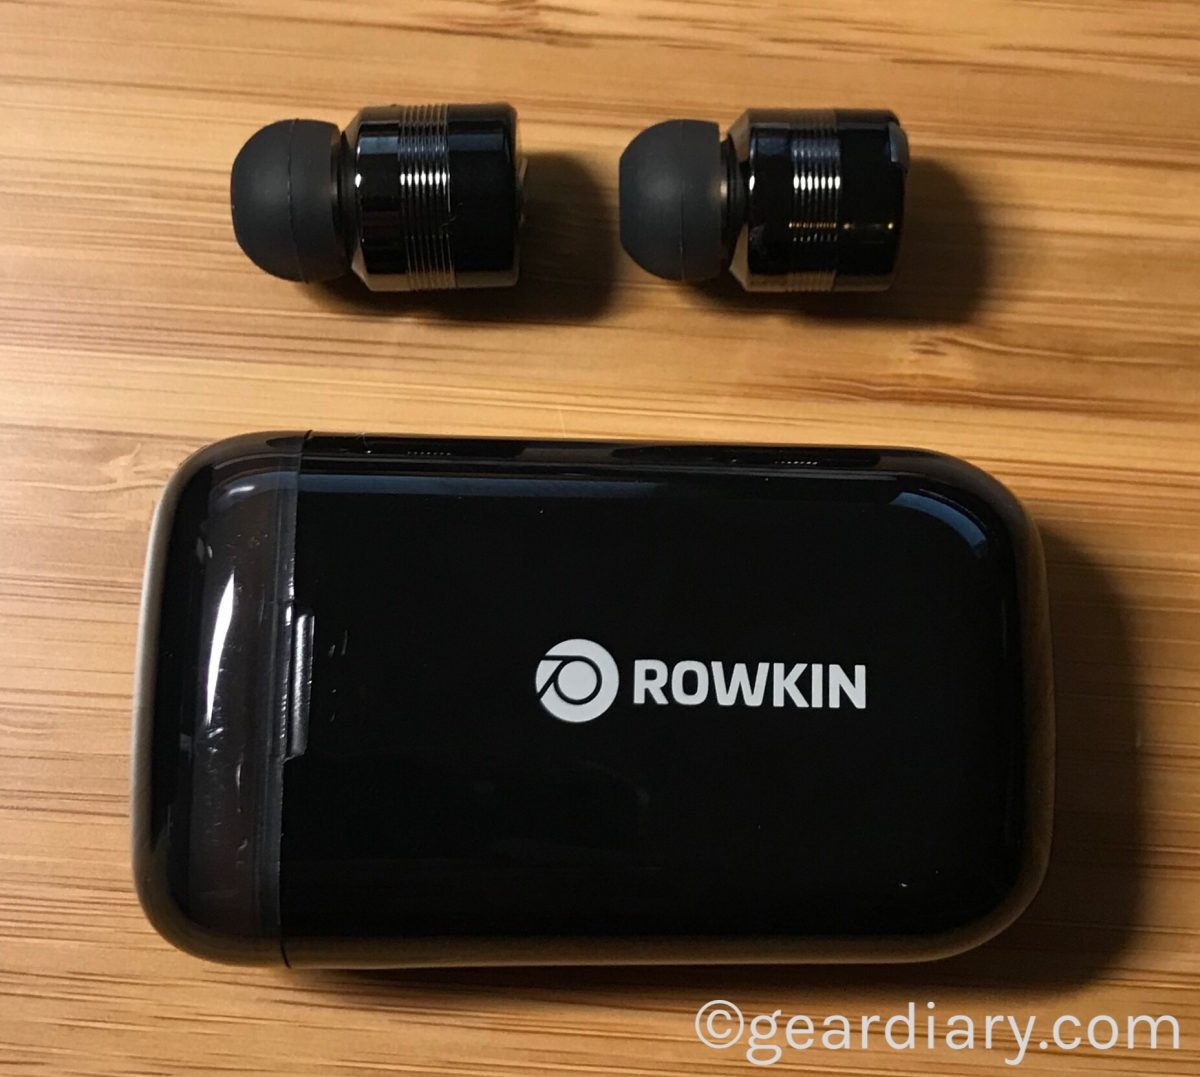 bose truly wireless earbuds. rowkin micro are small, truly wireless earbuds offering big sound bose